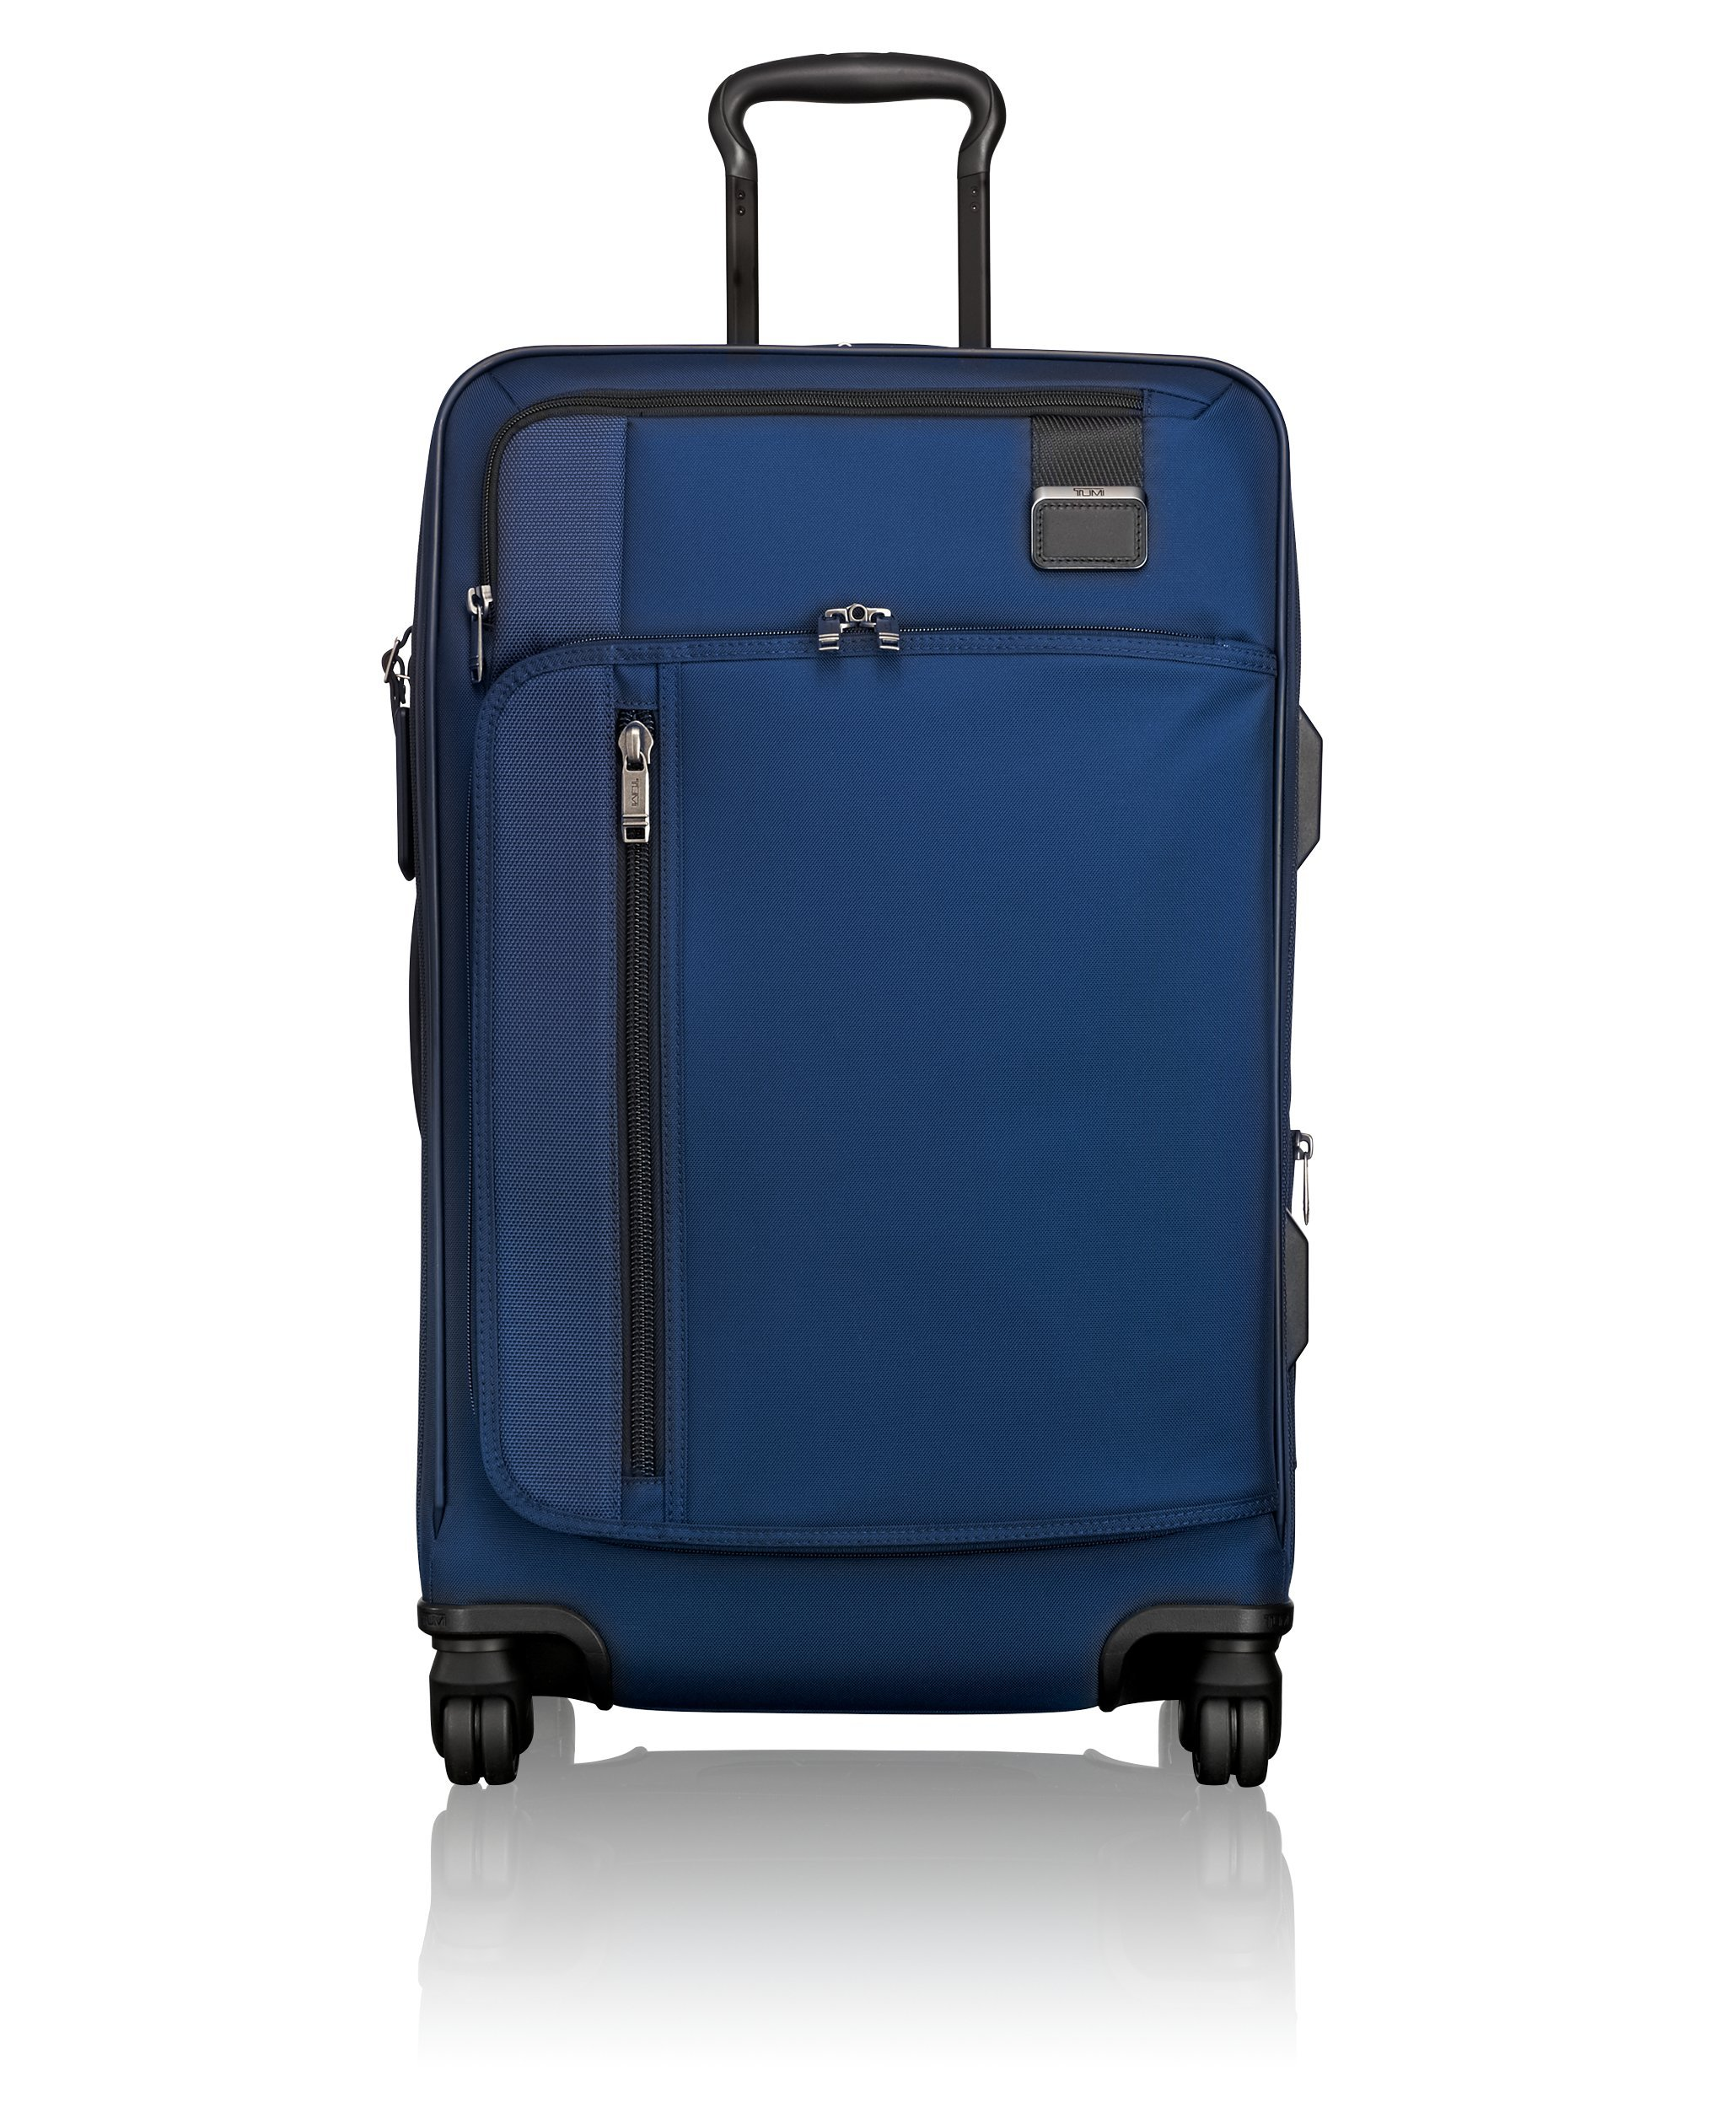 Tumi Merge Short Trip Expandable Packing Case, Ocean Blue